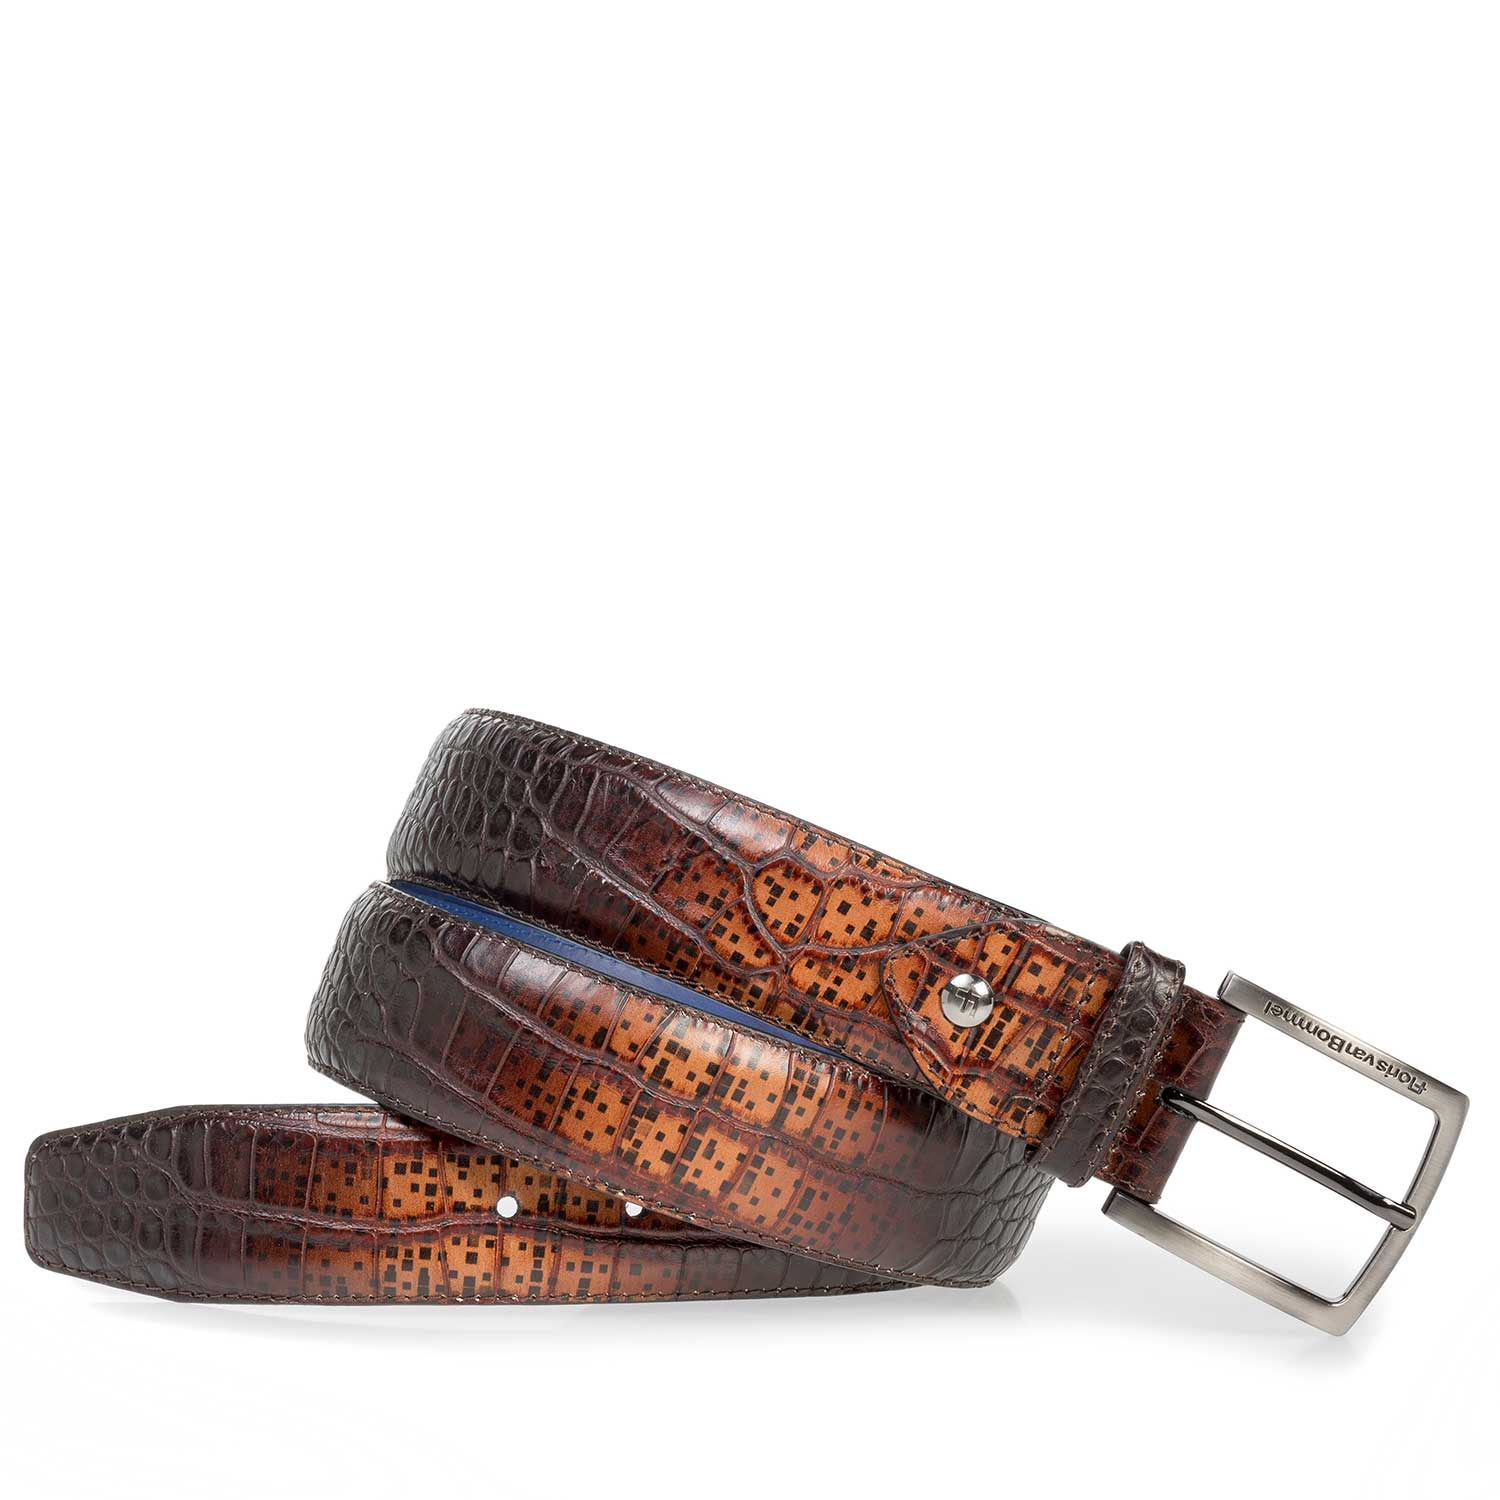 75202/24 - Premium cognac-coloured croco leather belt